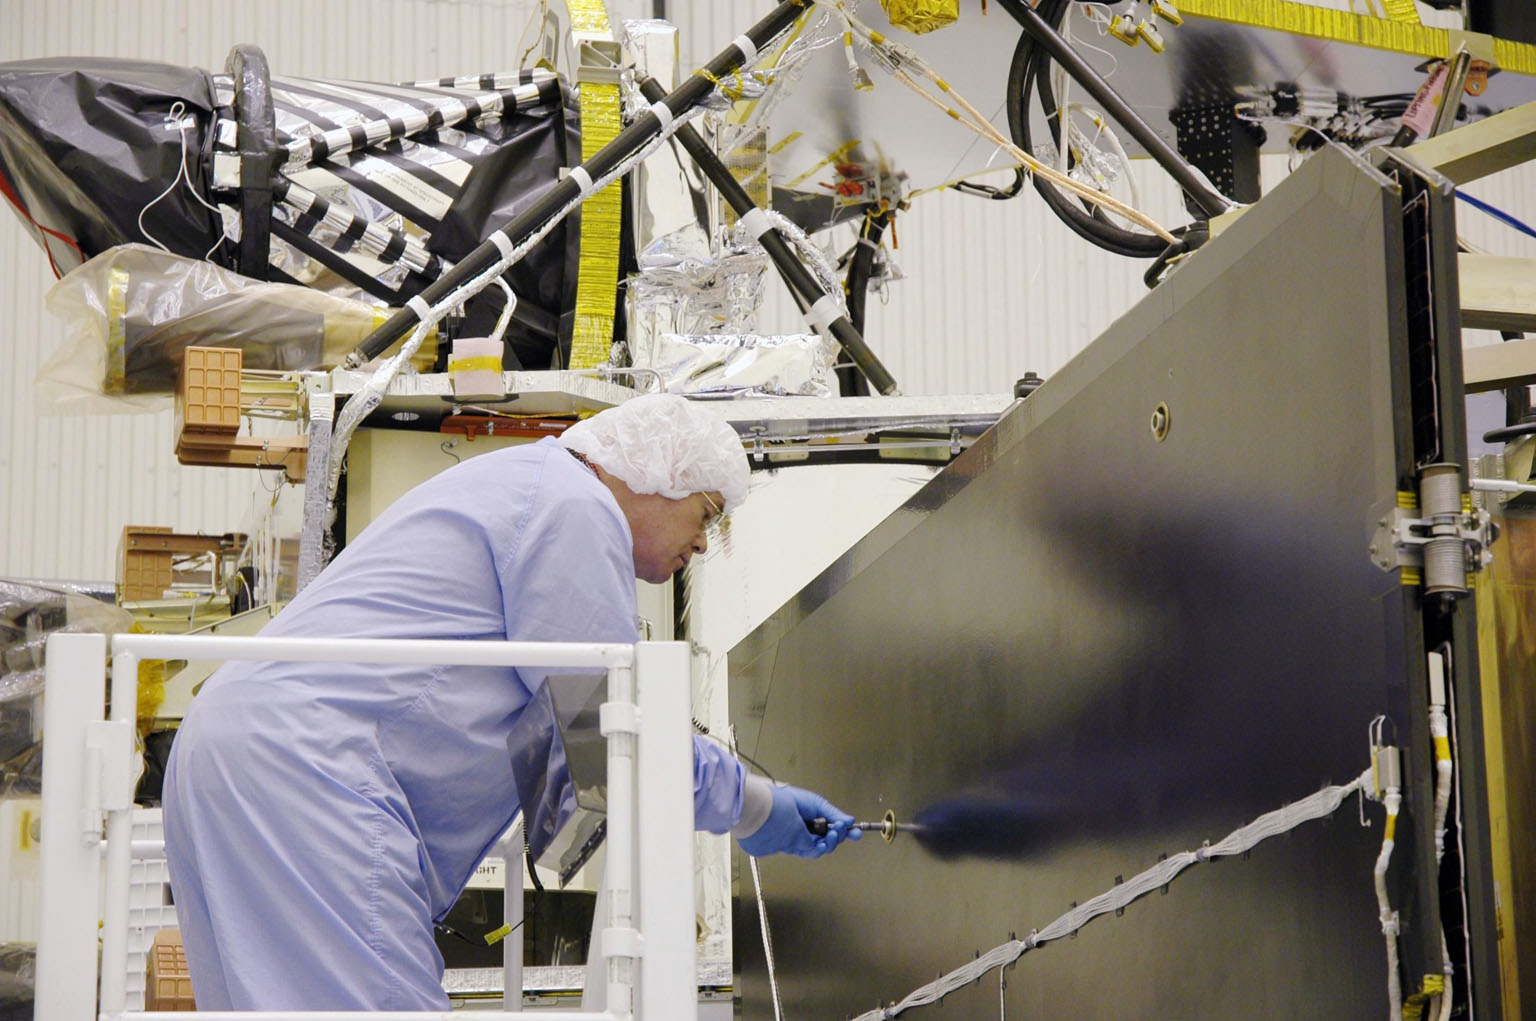 KENNEDY SPACE CENTER, FLA. - In the Payload Hazardous Servicing Facility, a technician prepares the solar arrays for the Mars Reconnaissance Orbiter (MRO) for an electromagnetic interference verification test. If no interference is found during the test, the Shallow Radar Antenna (SHARAD) will be installed on the spacecraft. The spacecraft is undergoing multiple mechanical assembly operations and electrical tests to verify its readiness for launch. The MRO was built by Lockheed Martin for NASA?s Jet Propulsion Laboratory in California. It is the next major step in Mars exploration and scheduled for launch from Launch Complex 41 at Cape Canaveral Air Force Station in a window opening Aug. 10. The MRO is an important next step in fulfilling NASA?s vision of space exploration and ultimately sending human explorers to Mars and beyond.